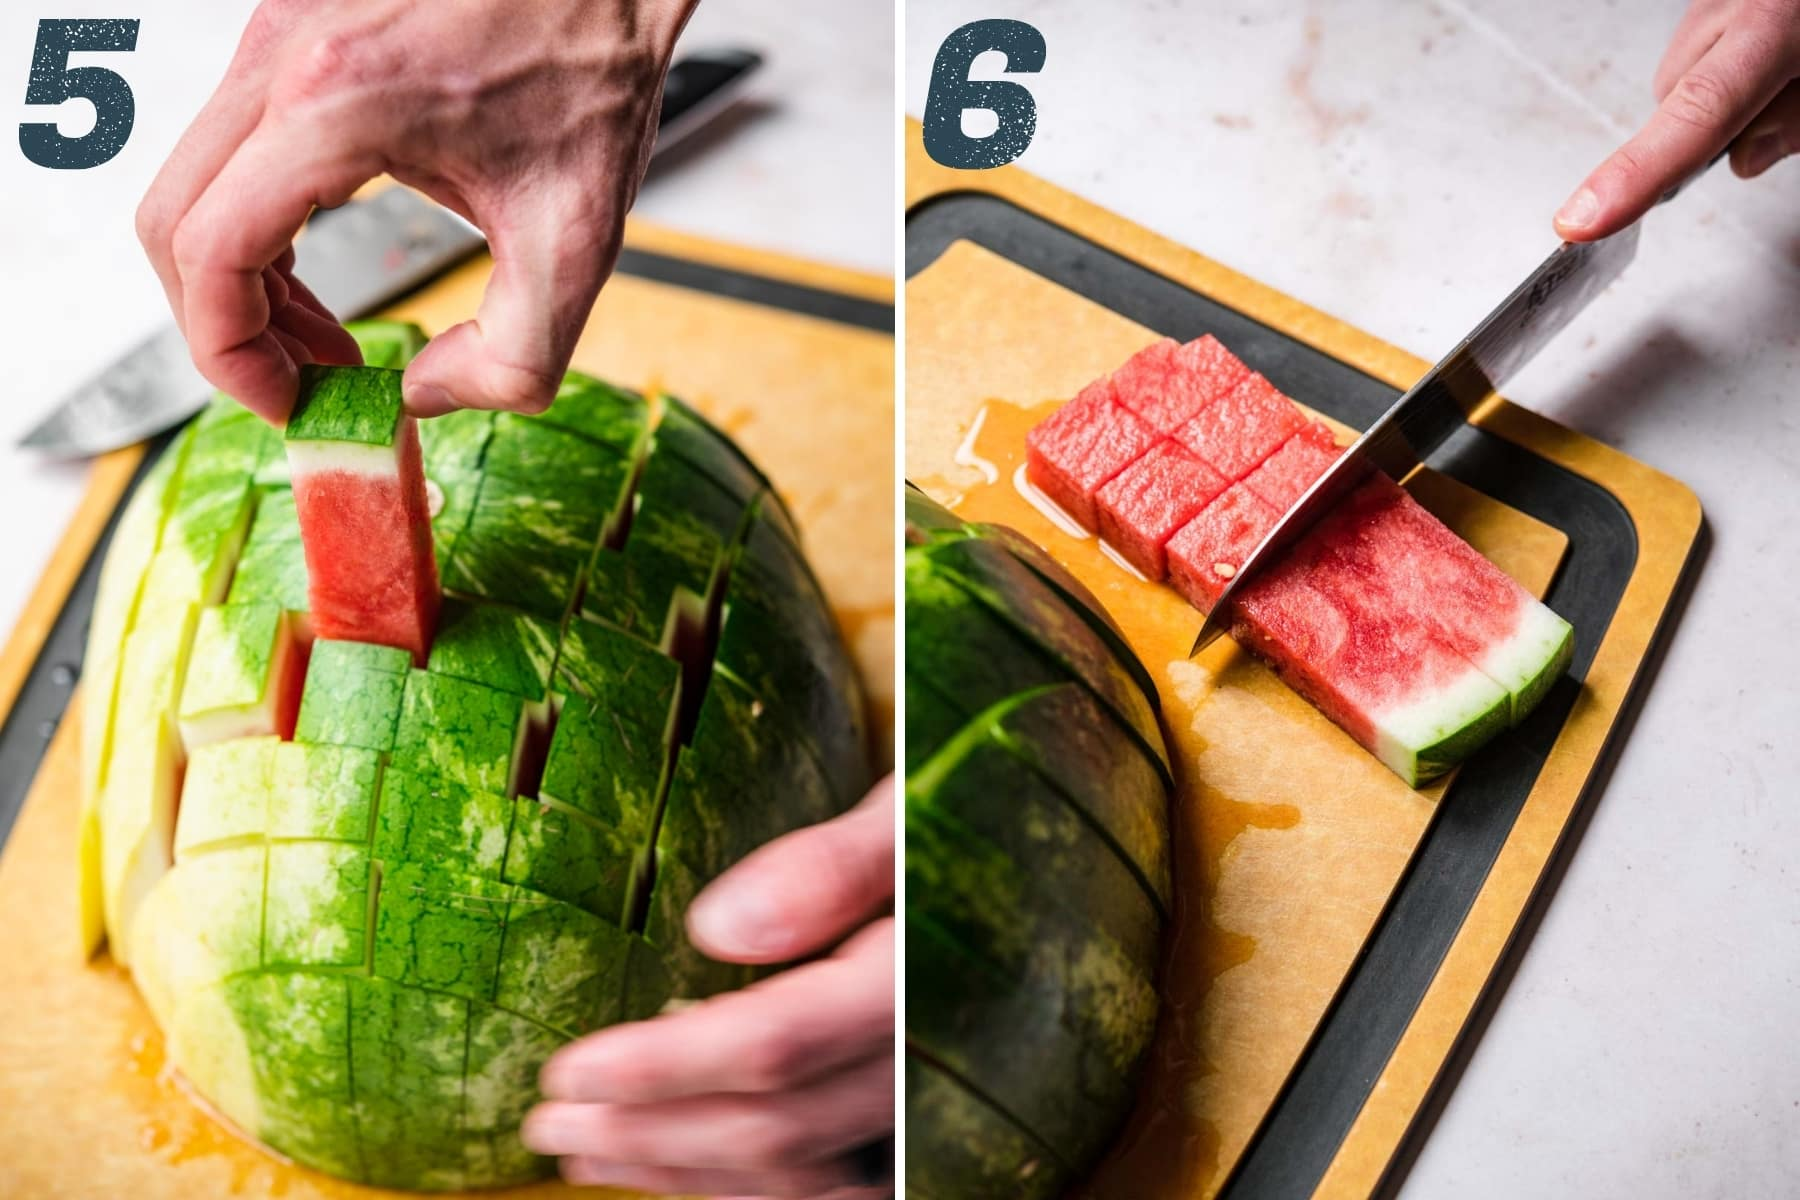 slicing watermelon into cubes.